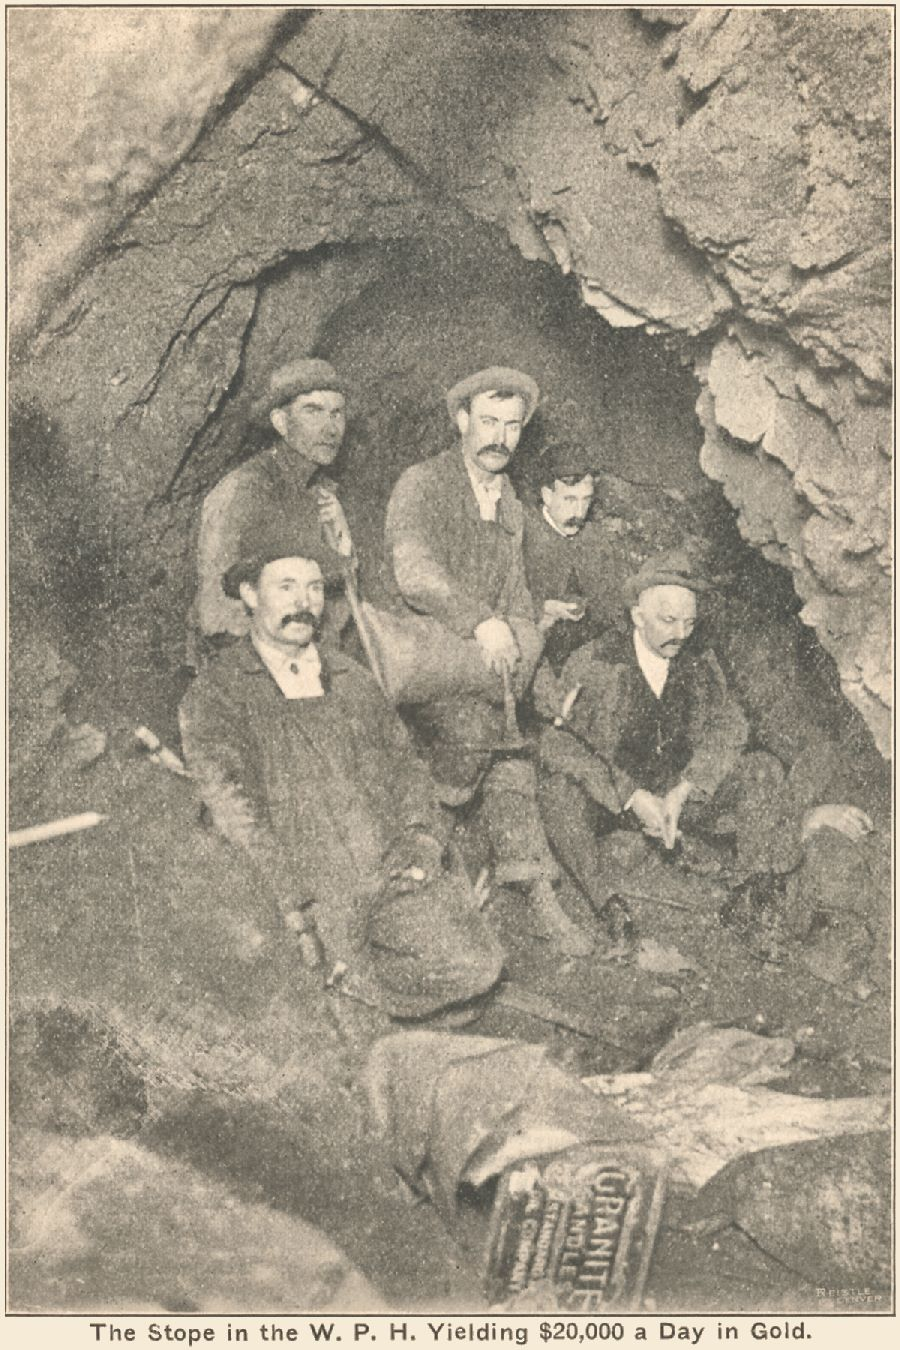 View underground of a Stope of the W.P.H. Mine